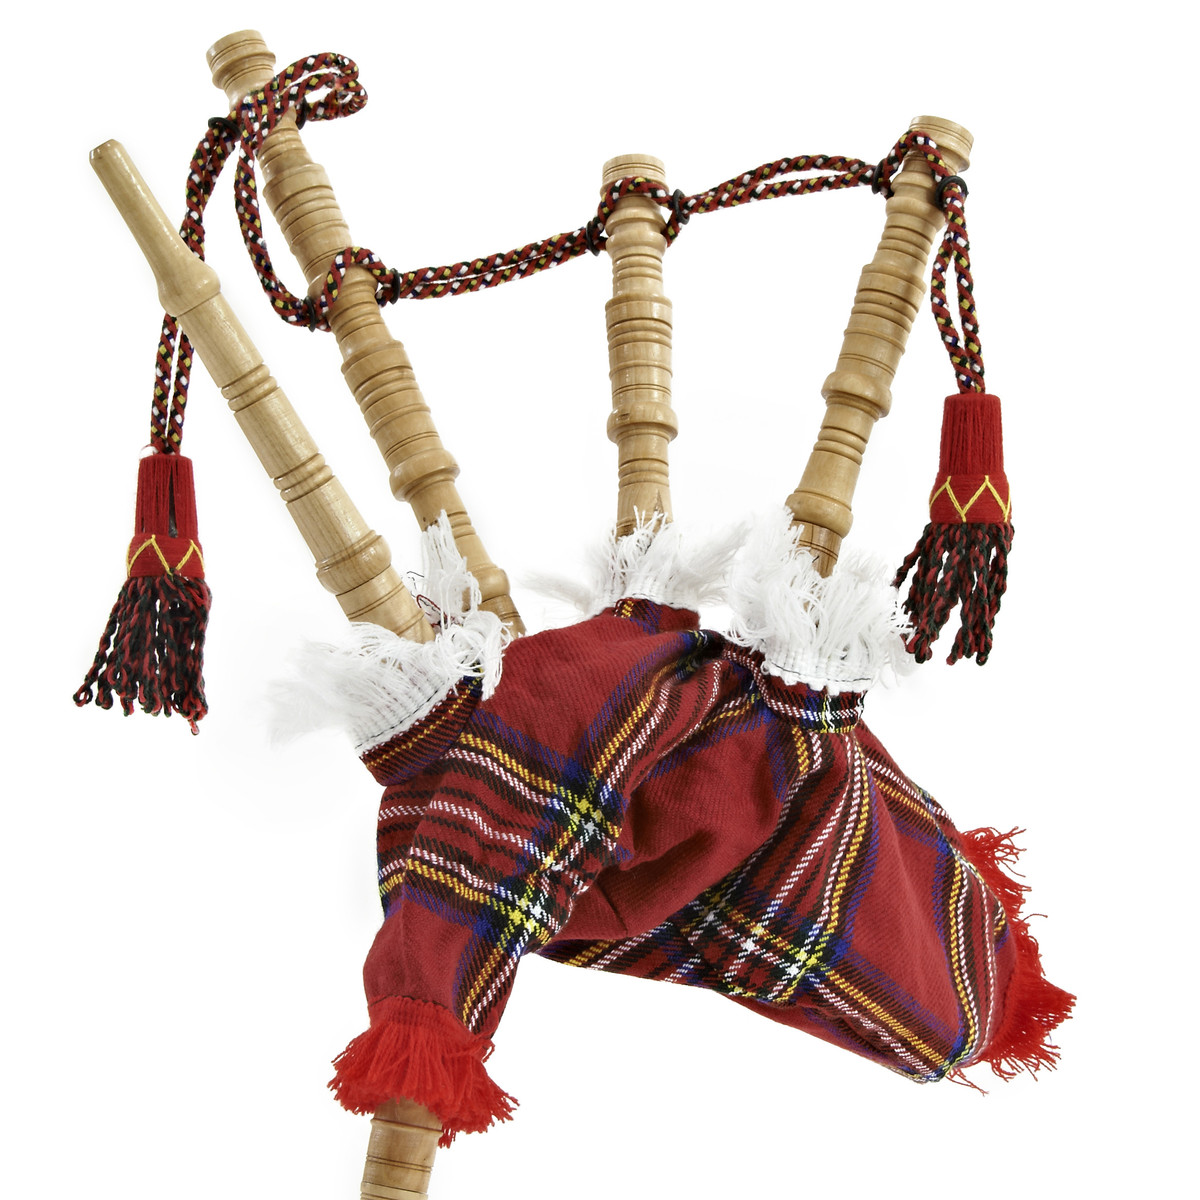 Bagpipe Reed And Drone Set by Gear4music